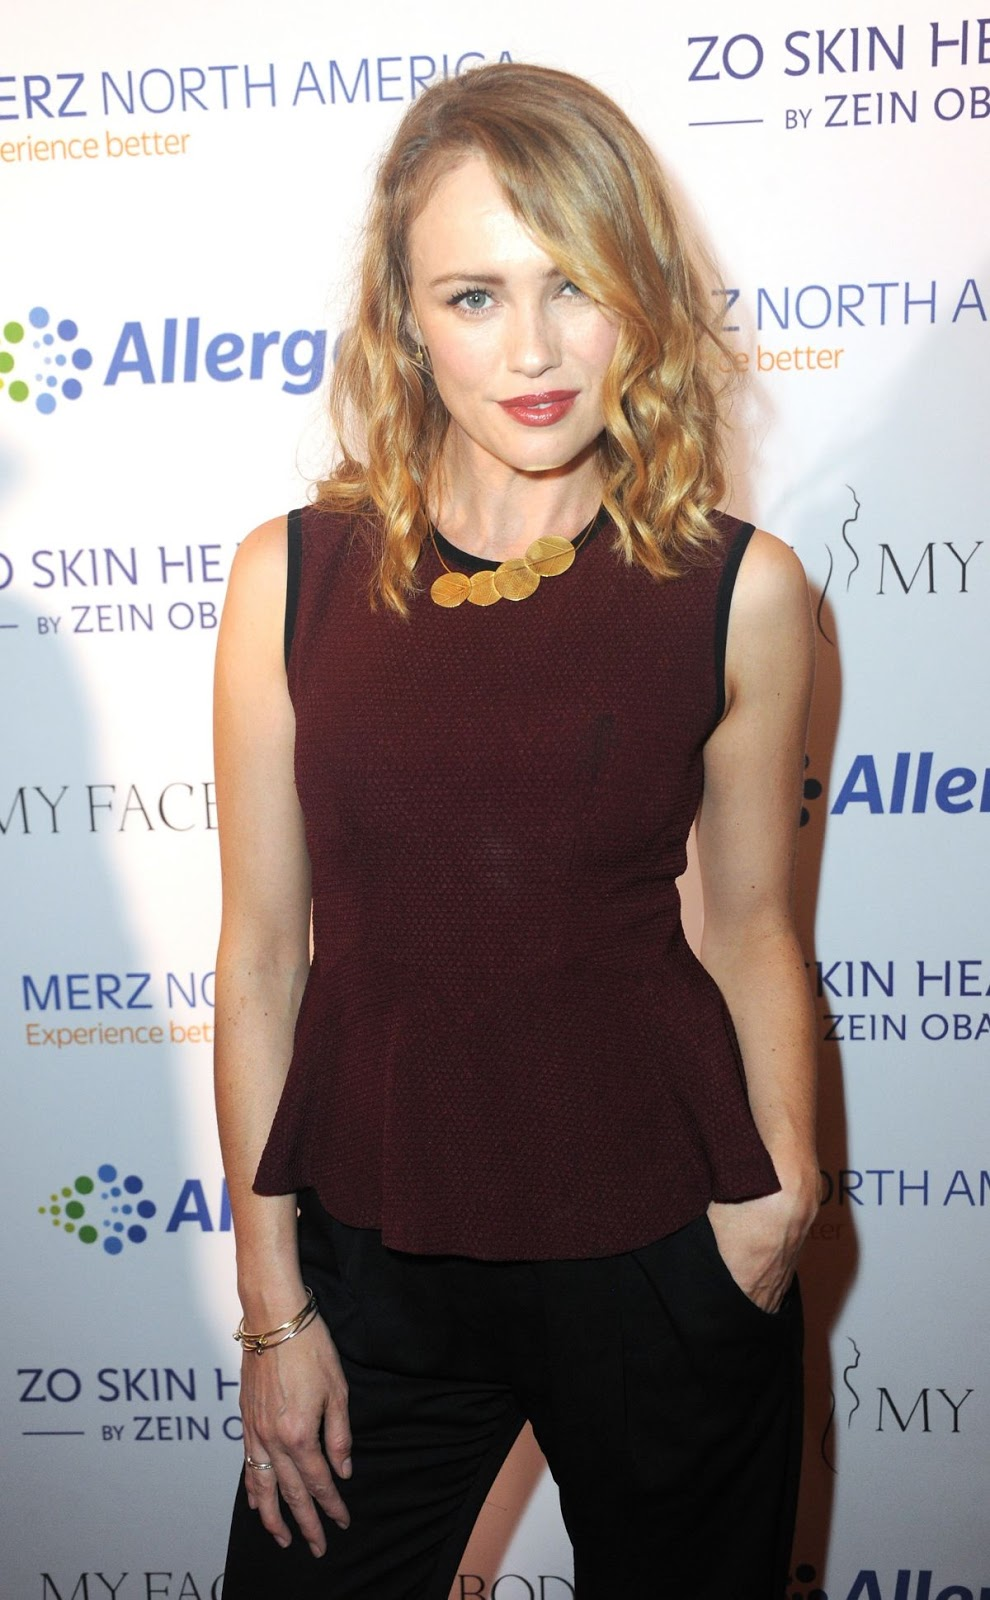 Full HQ Photos of 'Black Sails' actress Hannah New At Myfacemybody Awards In Beverly Hills